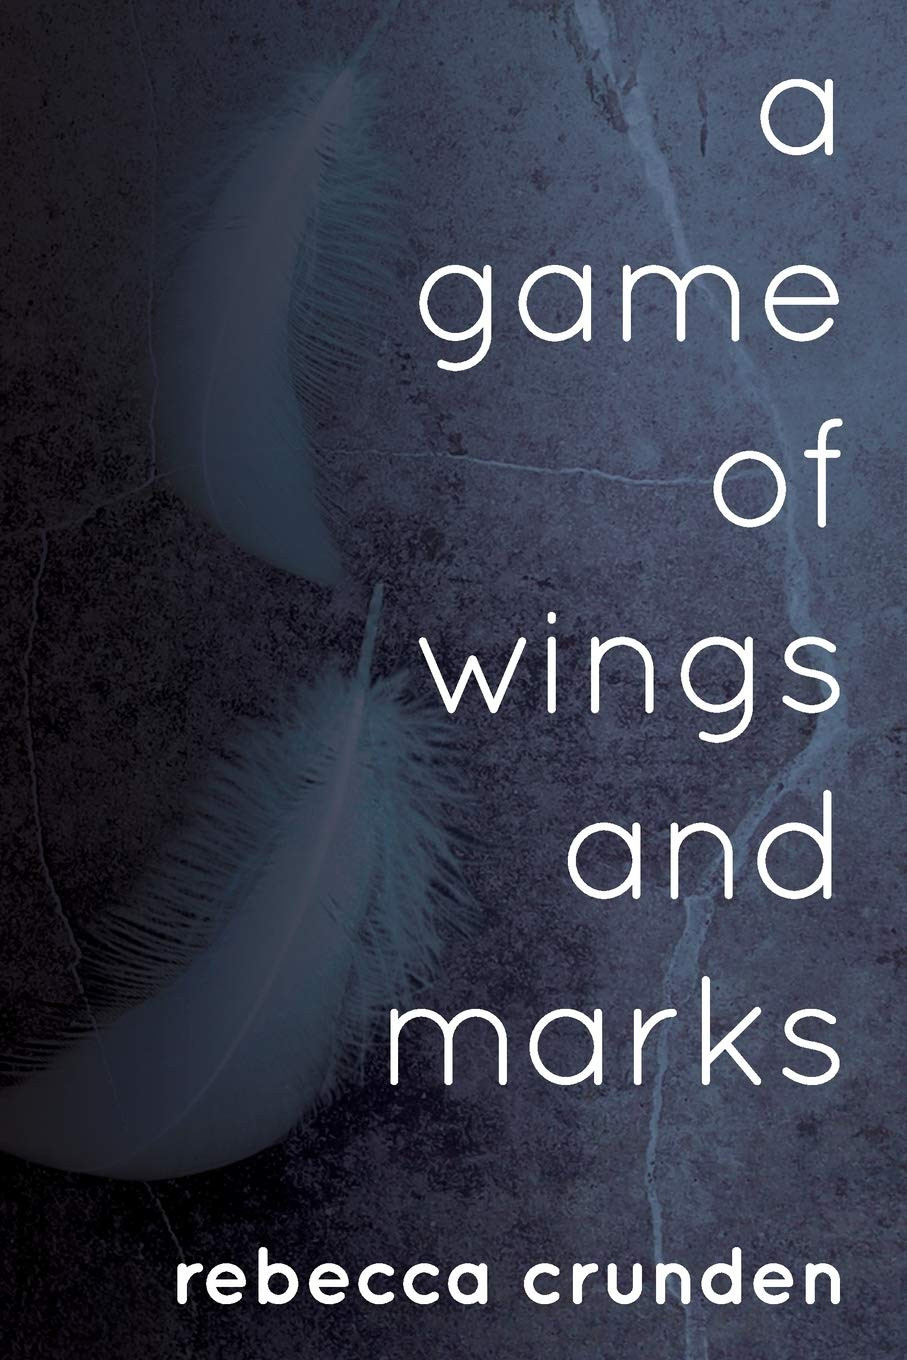 Book Review of A Game of Wings and Marks